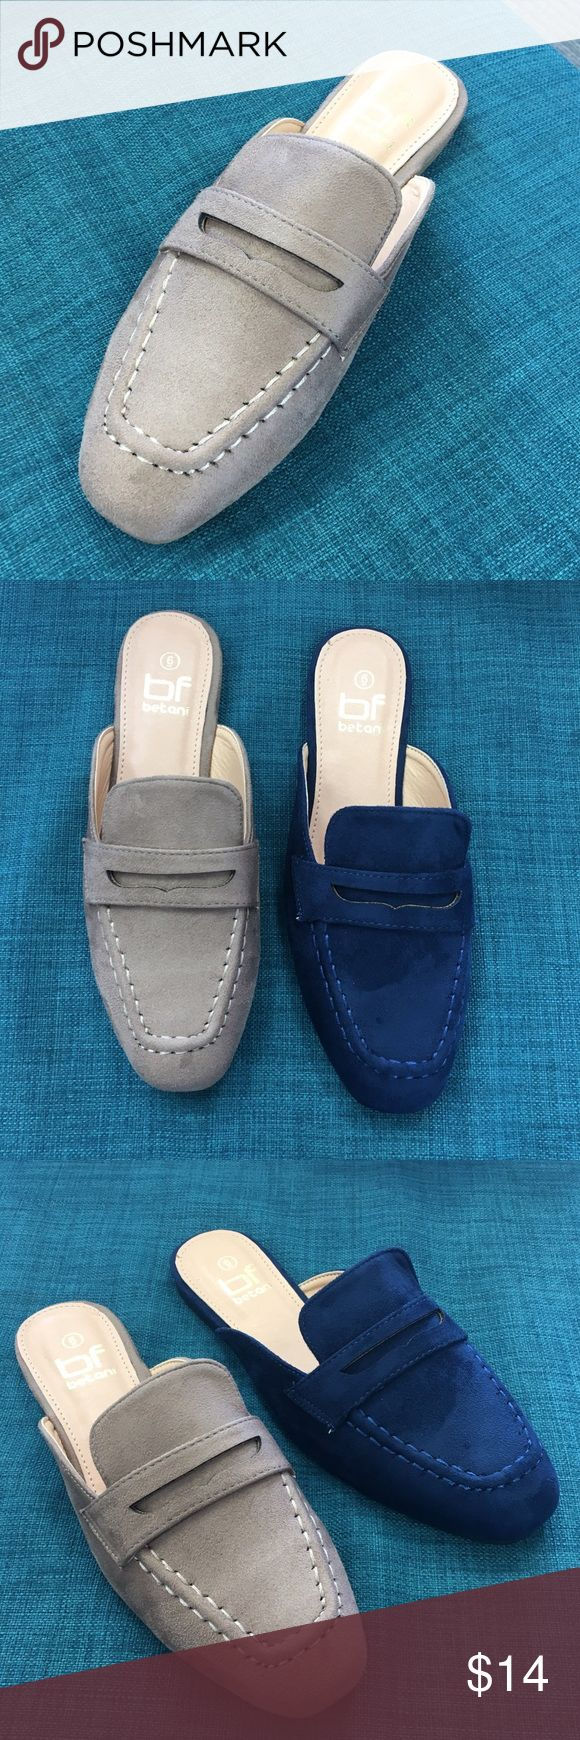 Beige suede loafer slide Beige suede slip on loafer. Also in navy. Runs true to size. Also in navy. Price is final. Shoes Flats & Loafers